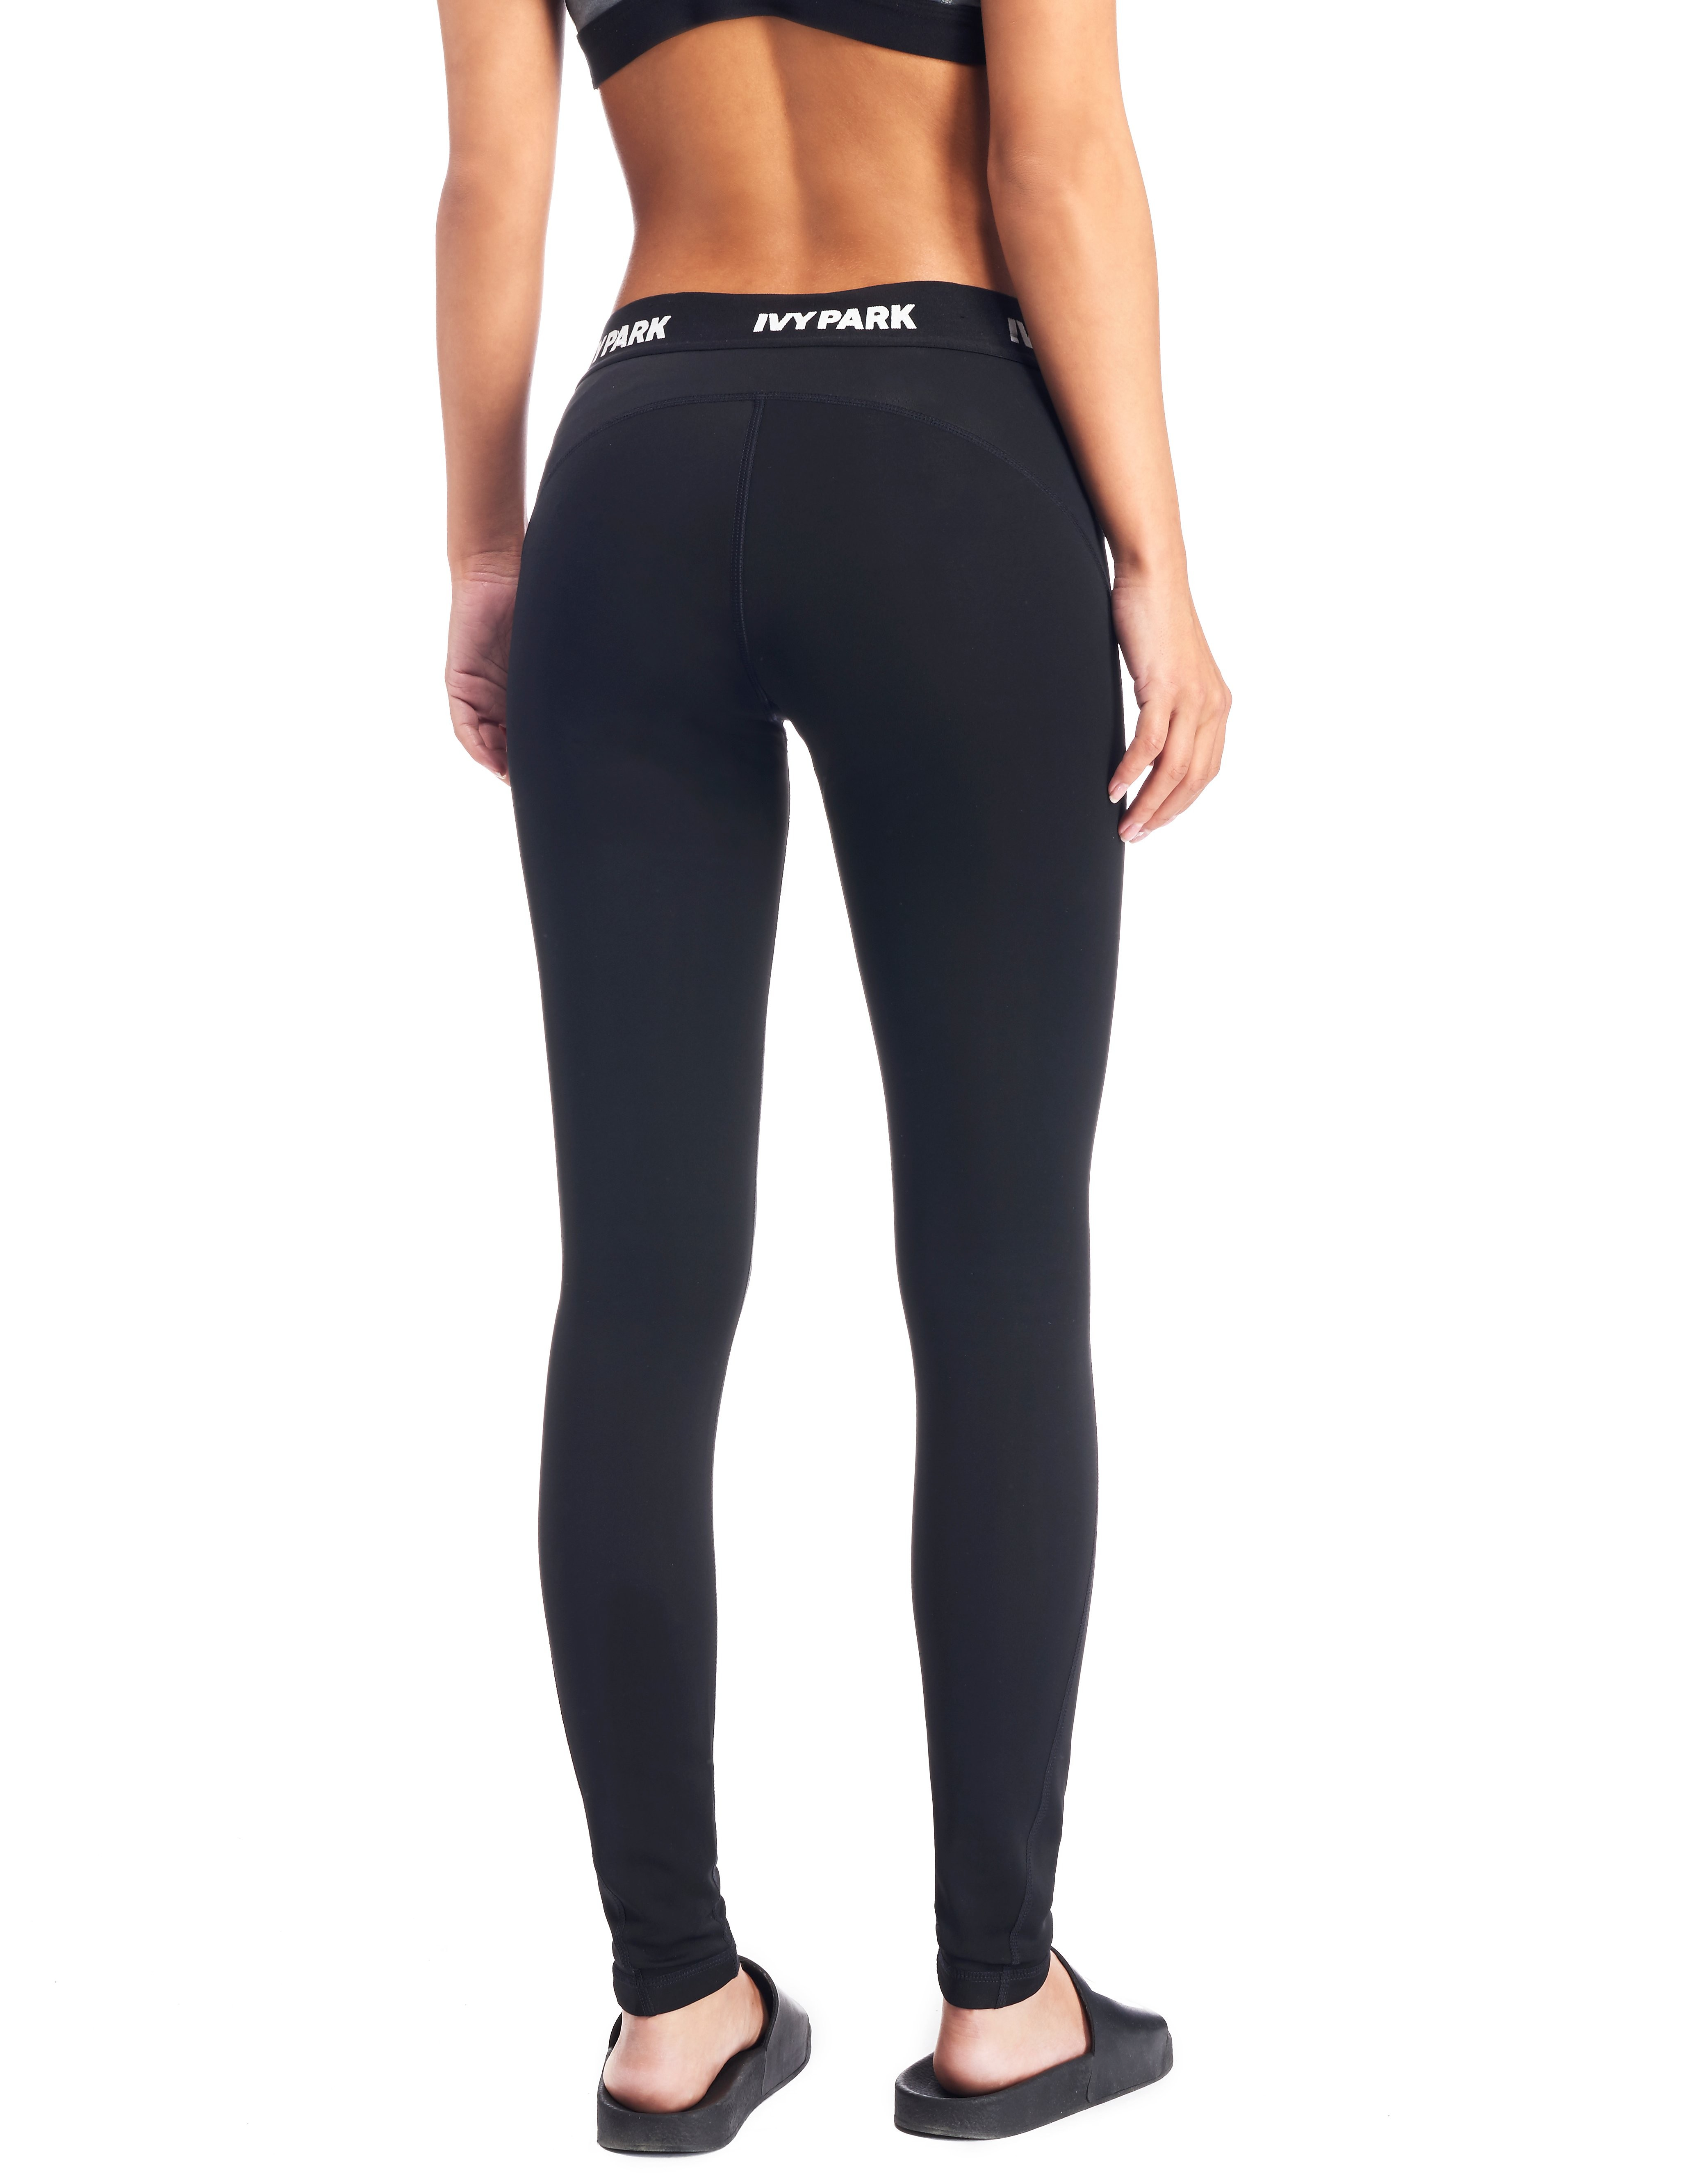 IVY PARK Low Rise Tights